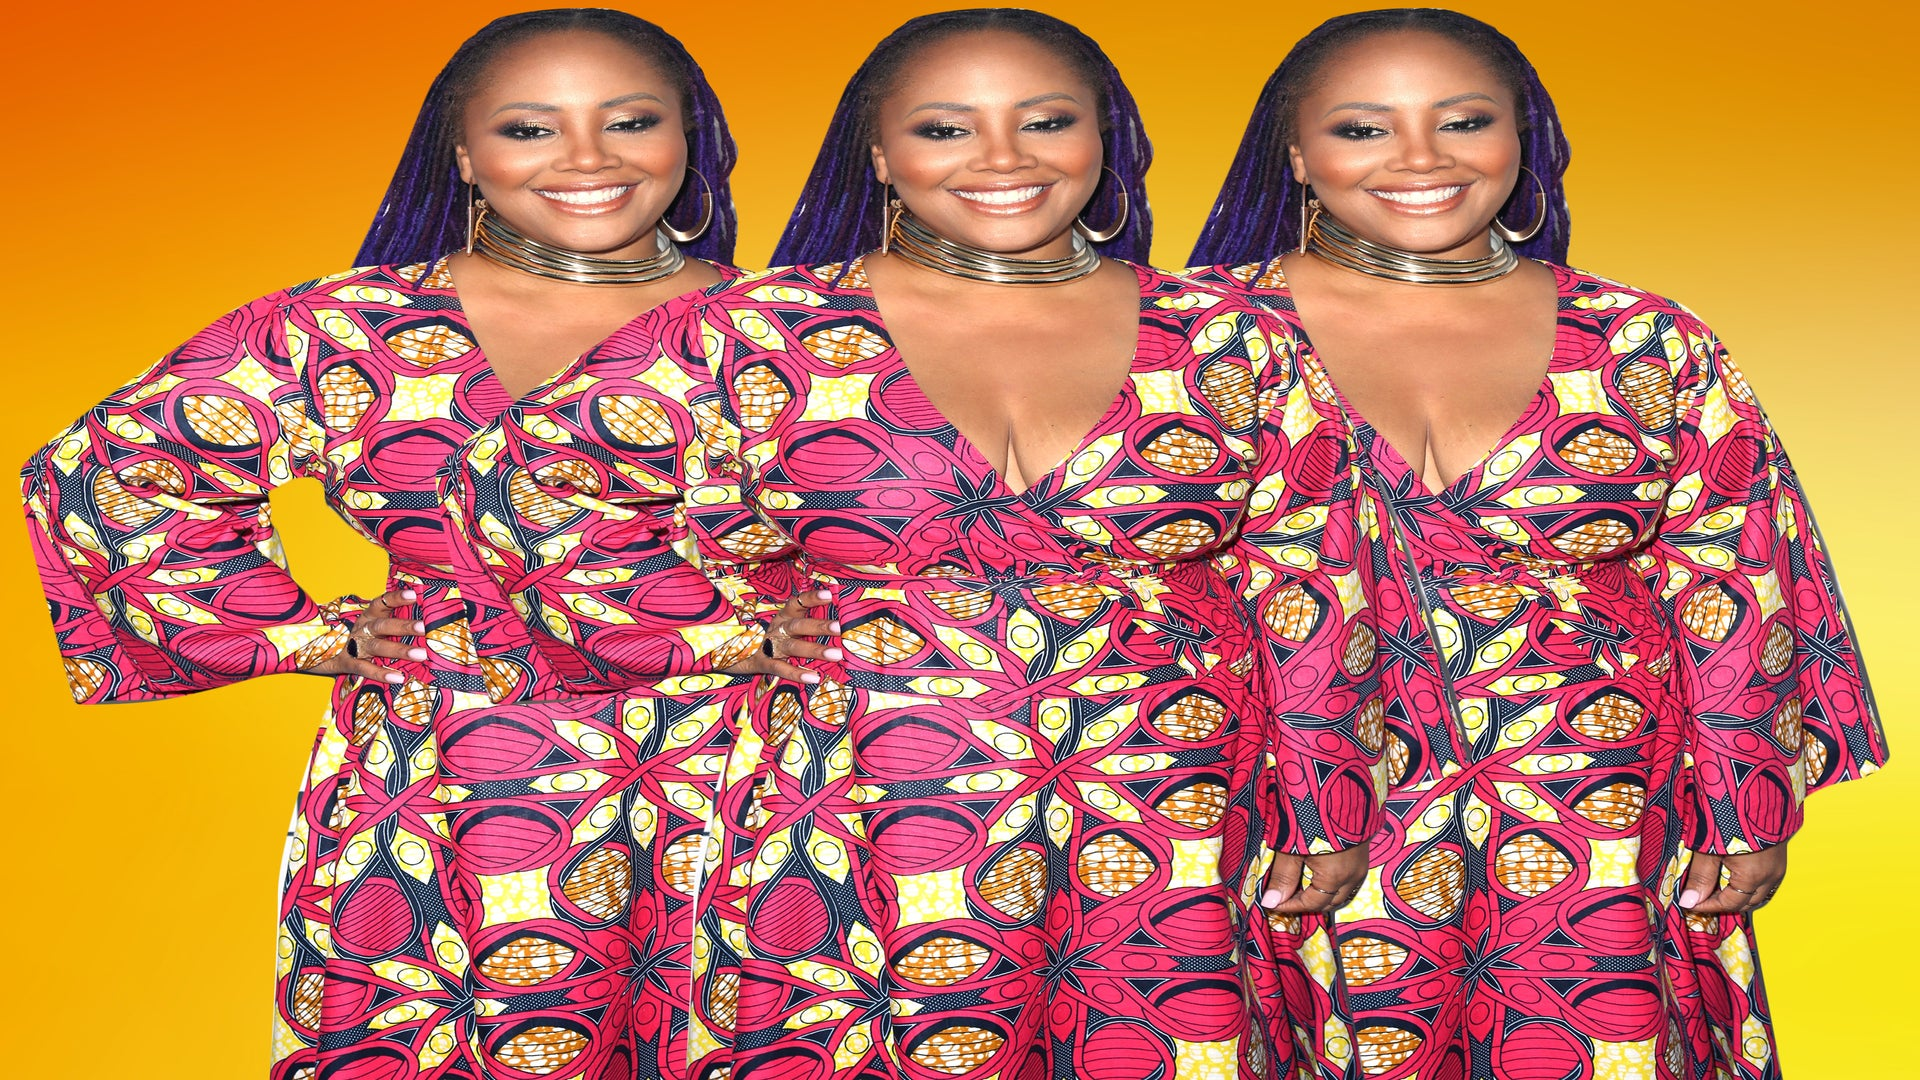 Look of the Day: Lalah Hathaway is Stunning in Vibrant Printed Dress